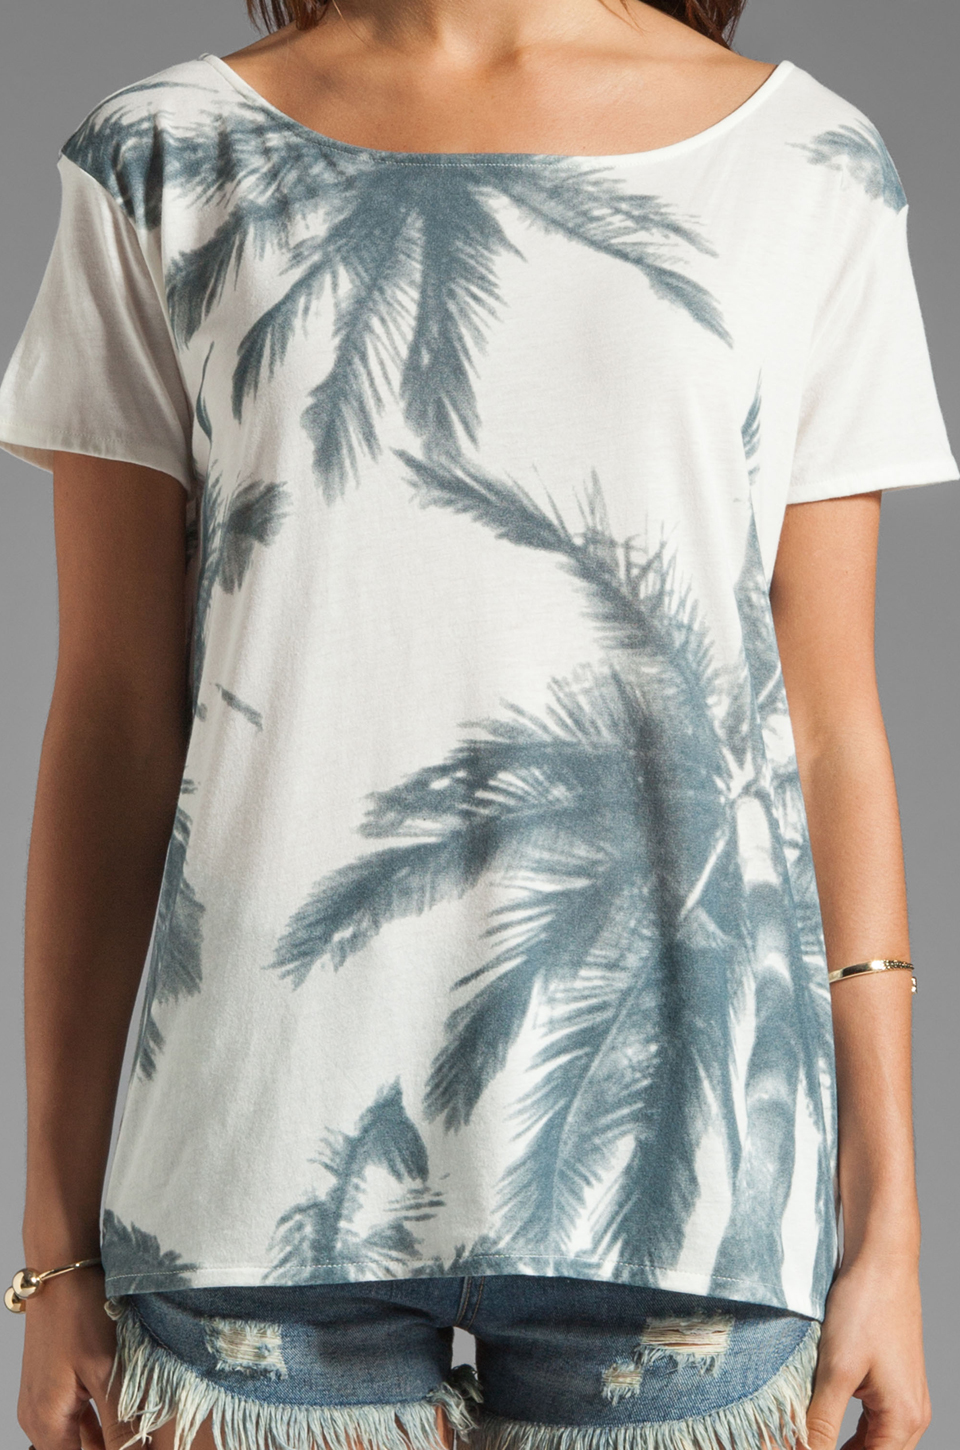 Soft Joie Katerina B Palm Springs Print Top in Peacoat